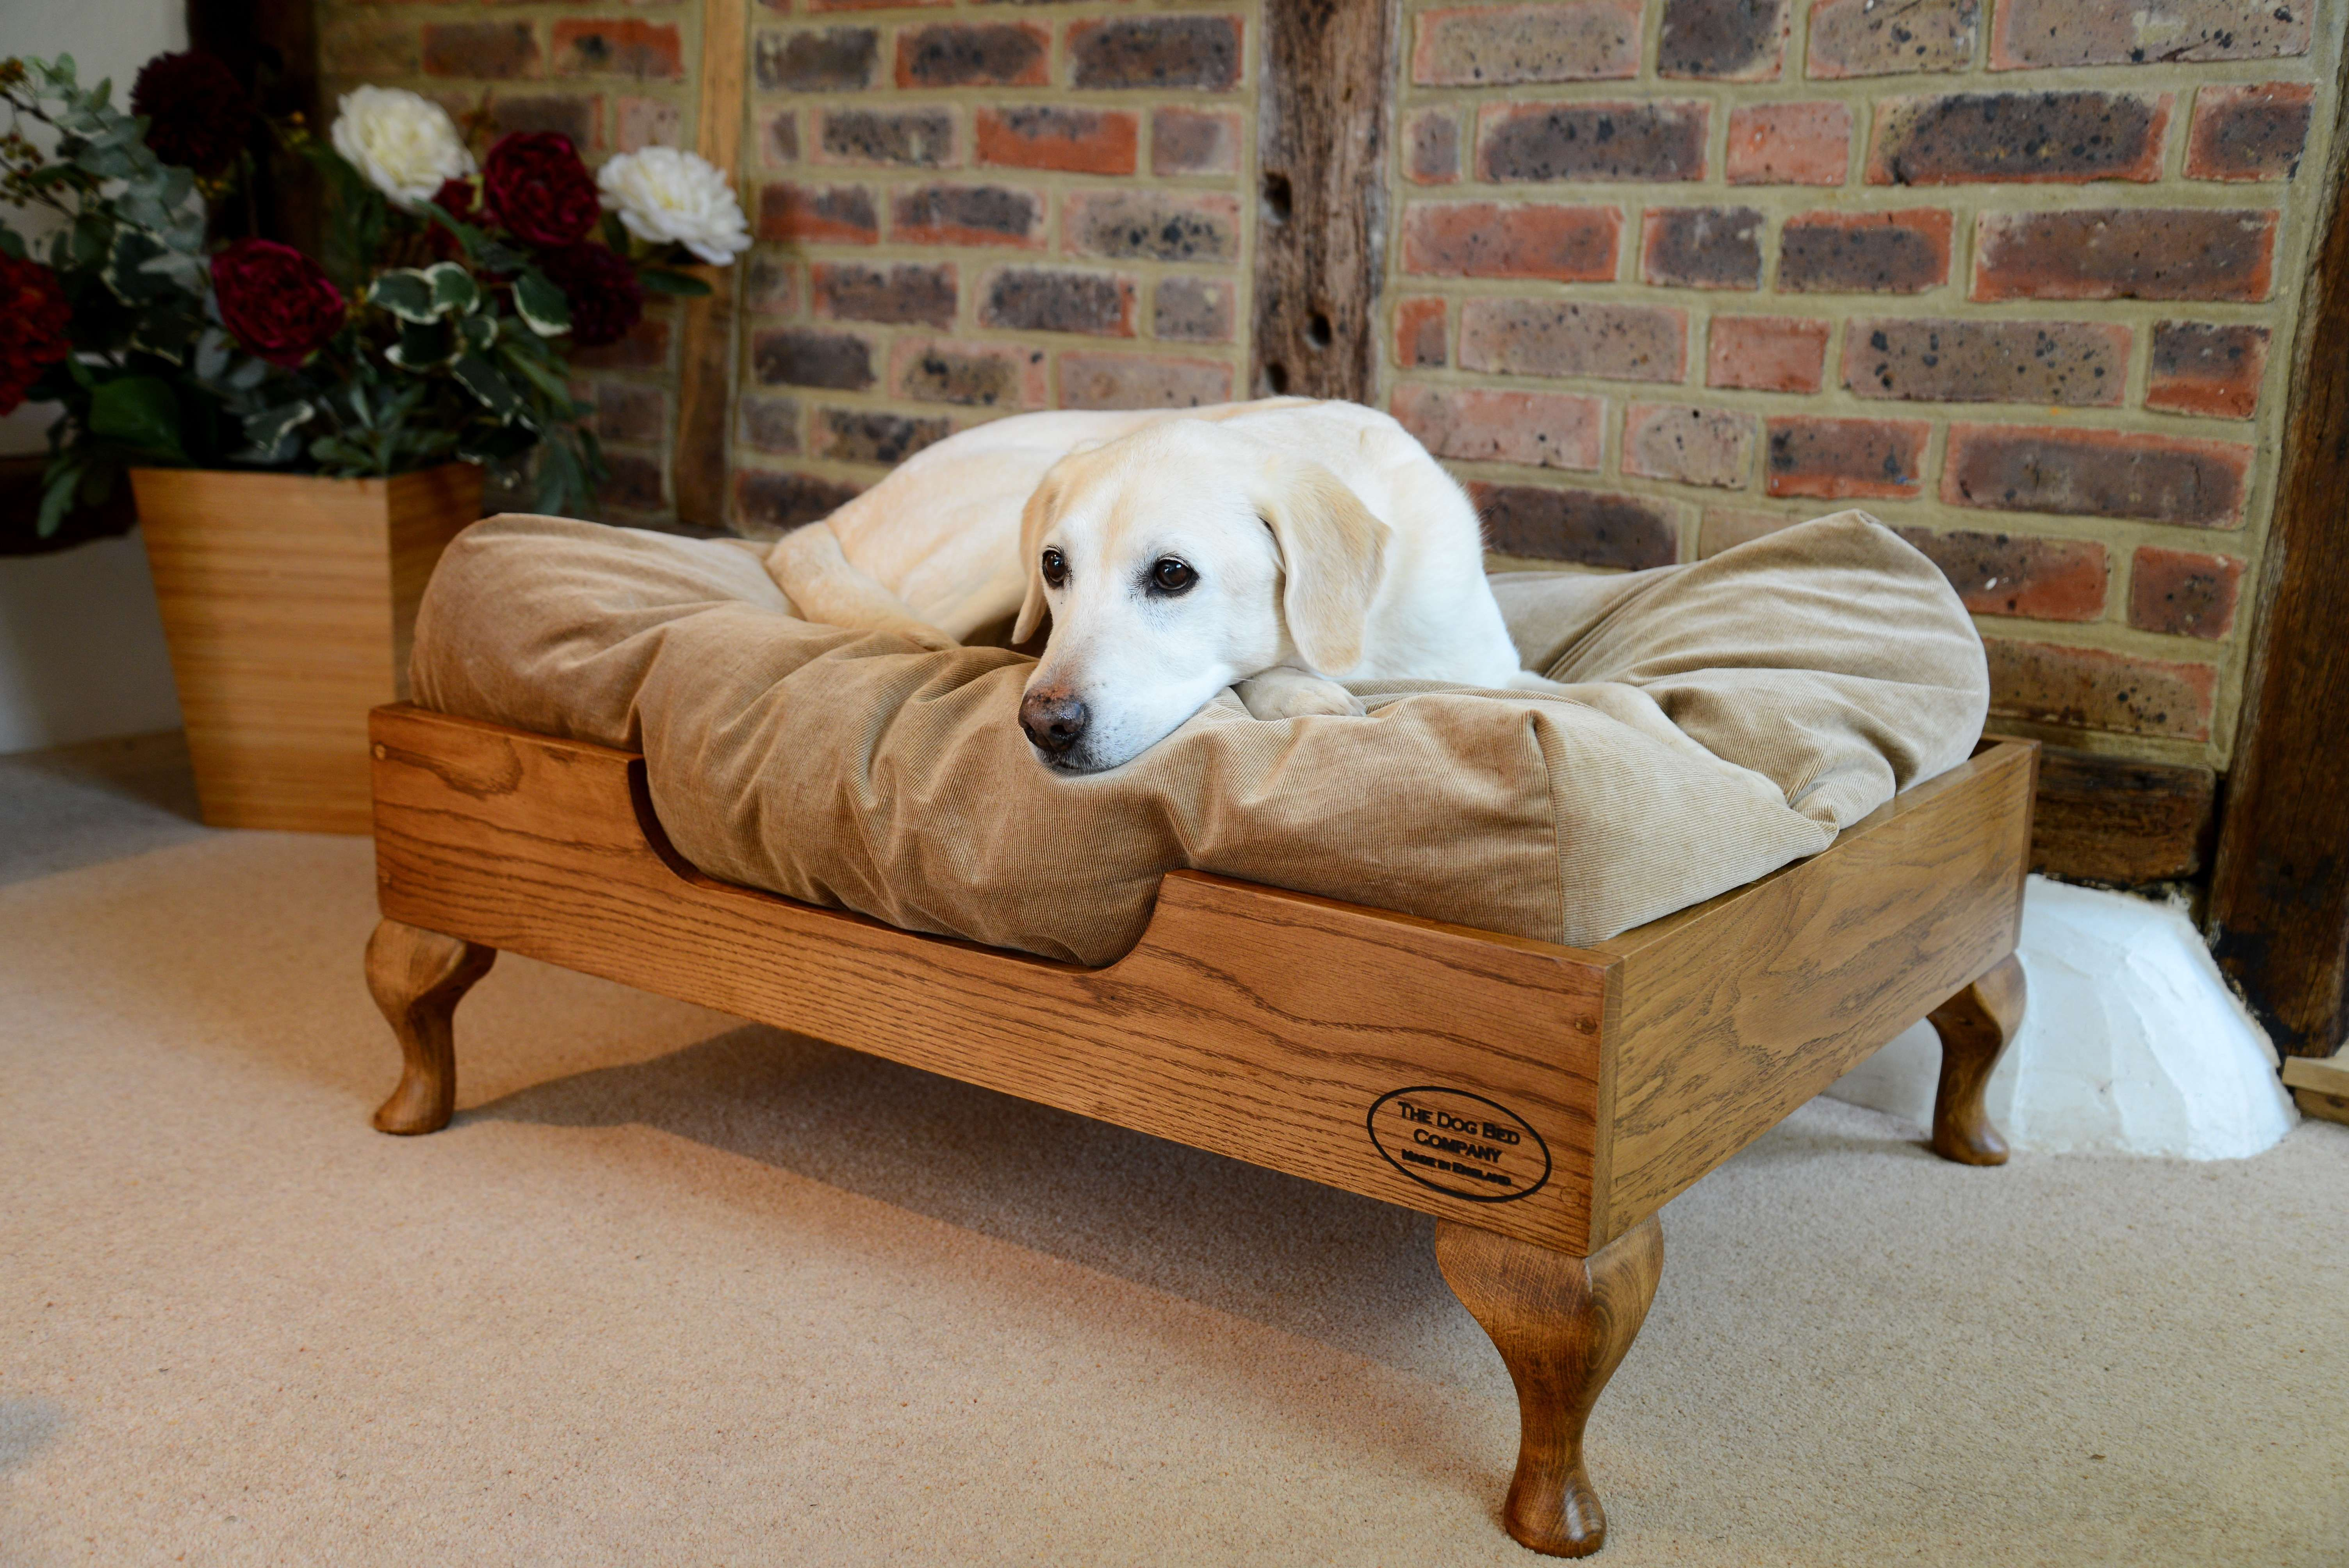 Raised oak handcrafted dog bed Dog bed, Wooden dog bed